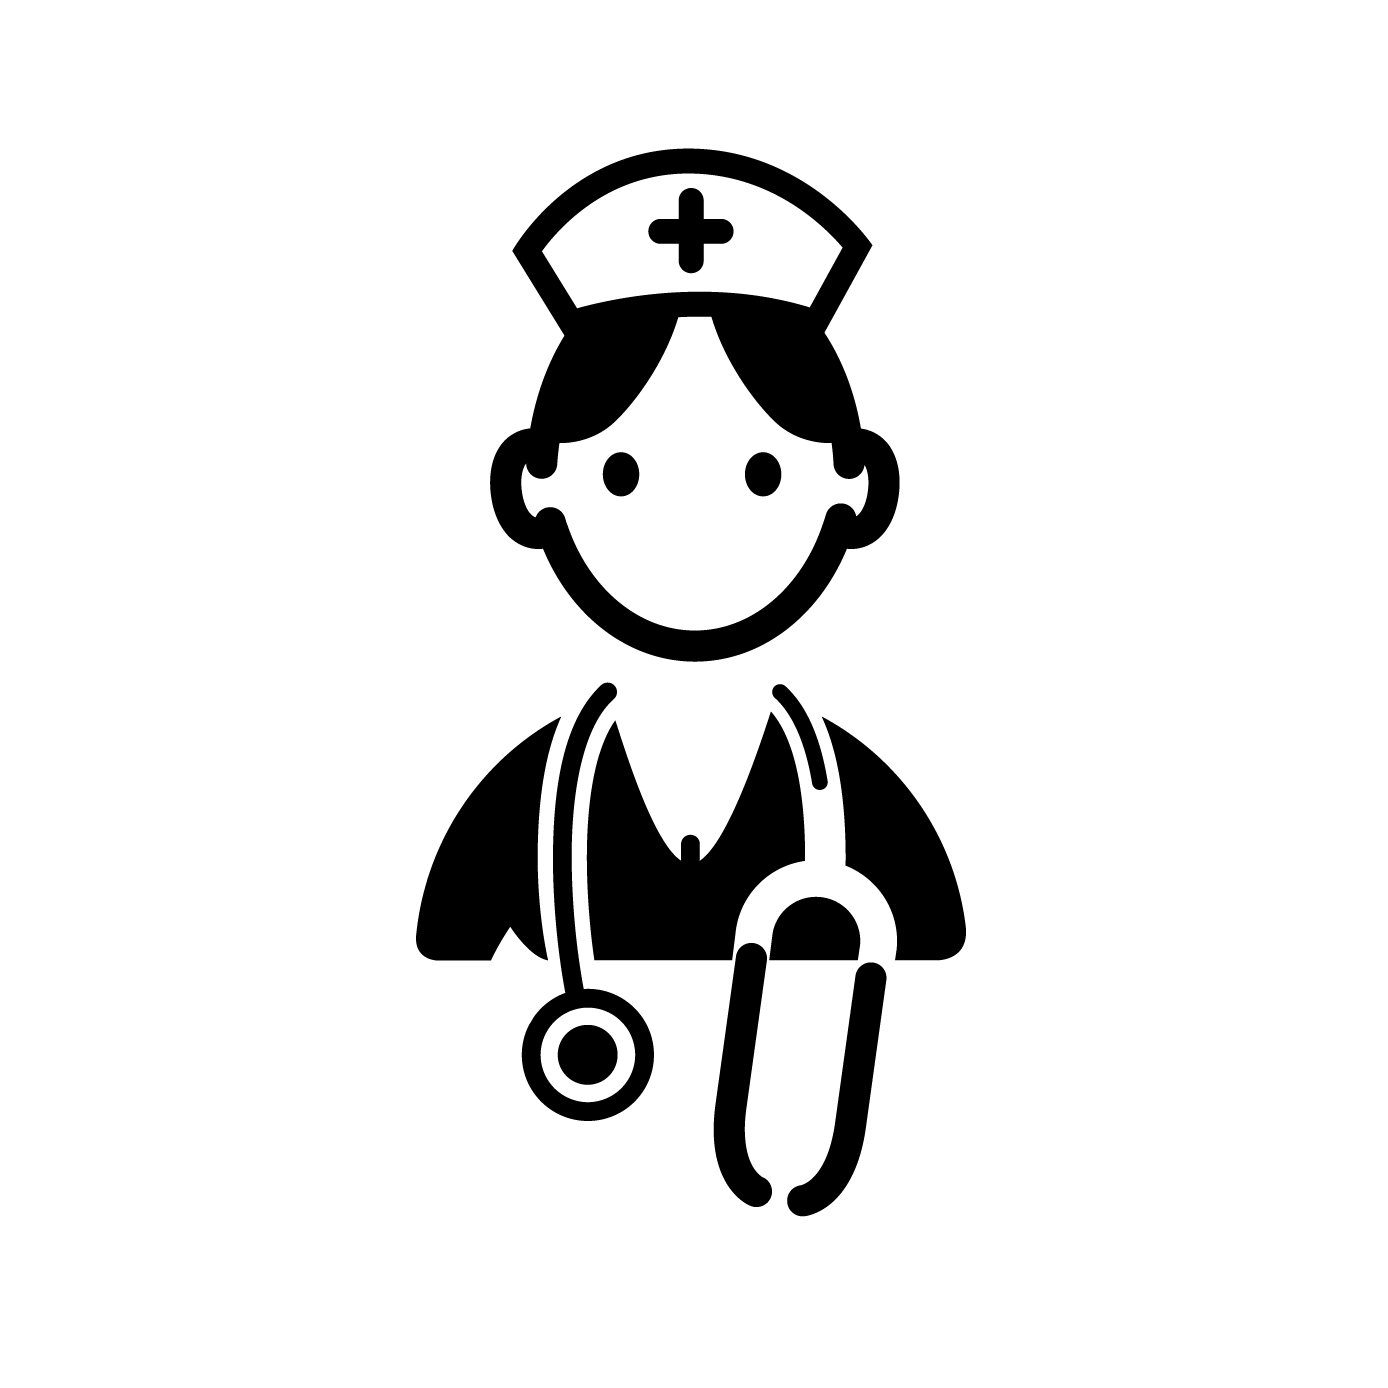 Free Nurse Midwife Cliparts Download Free Clip Art Free